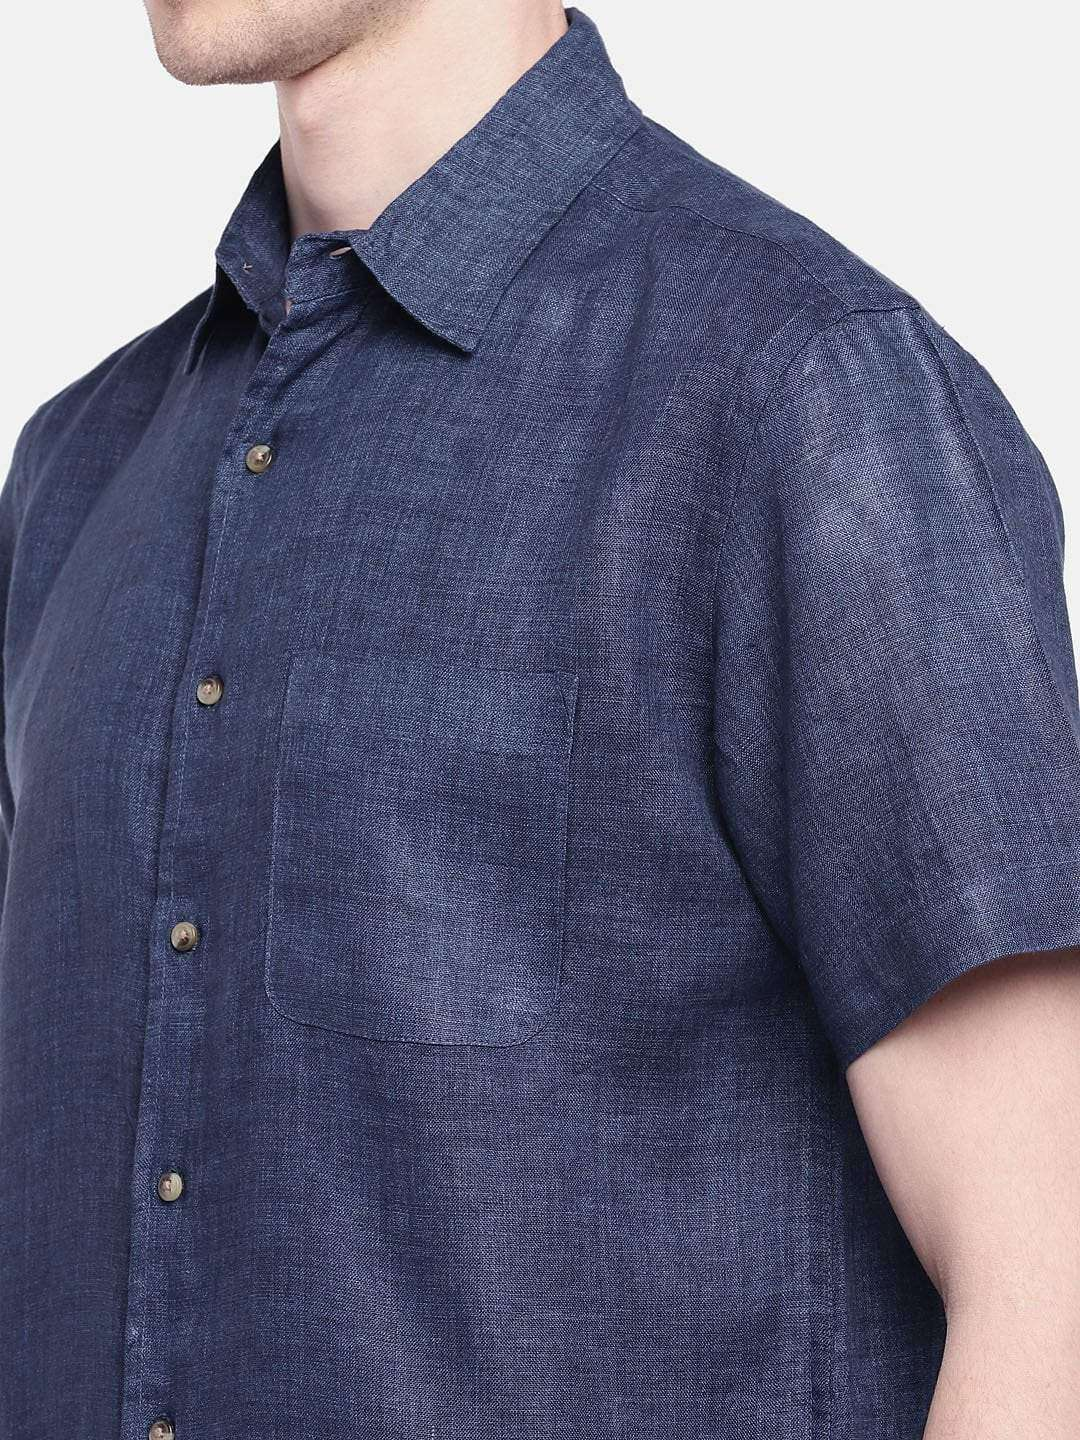 0384e64836c NAVY WOVEN SHIRTS | MEN'S CASUAL WEAR REGULAR FIT WOVEN SHIRTS